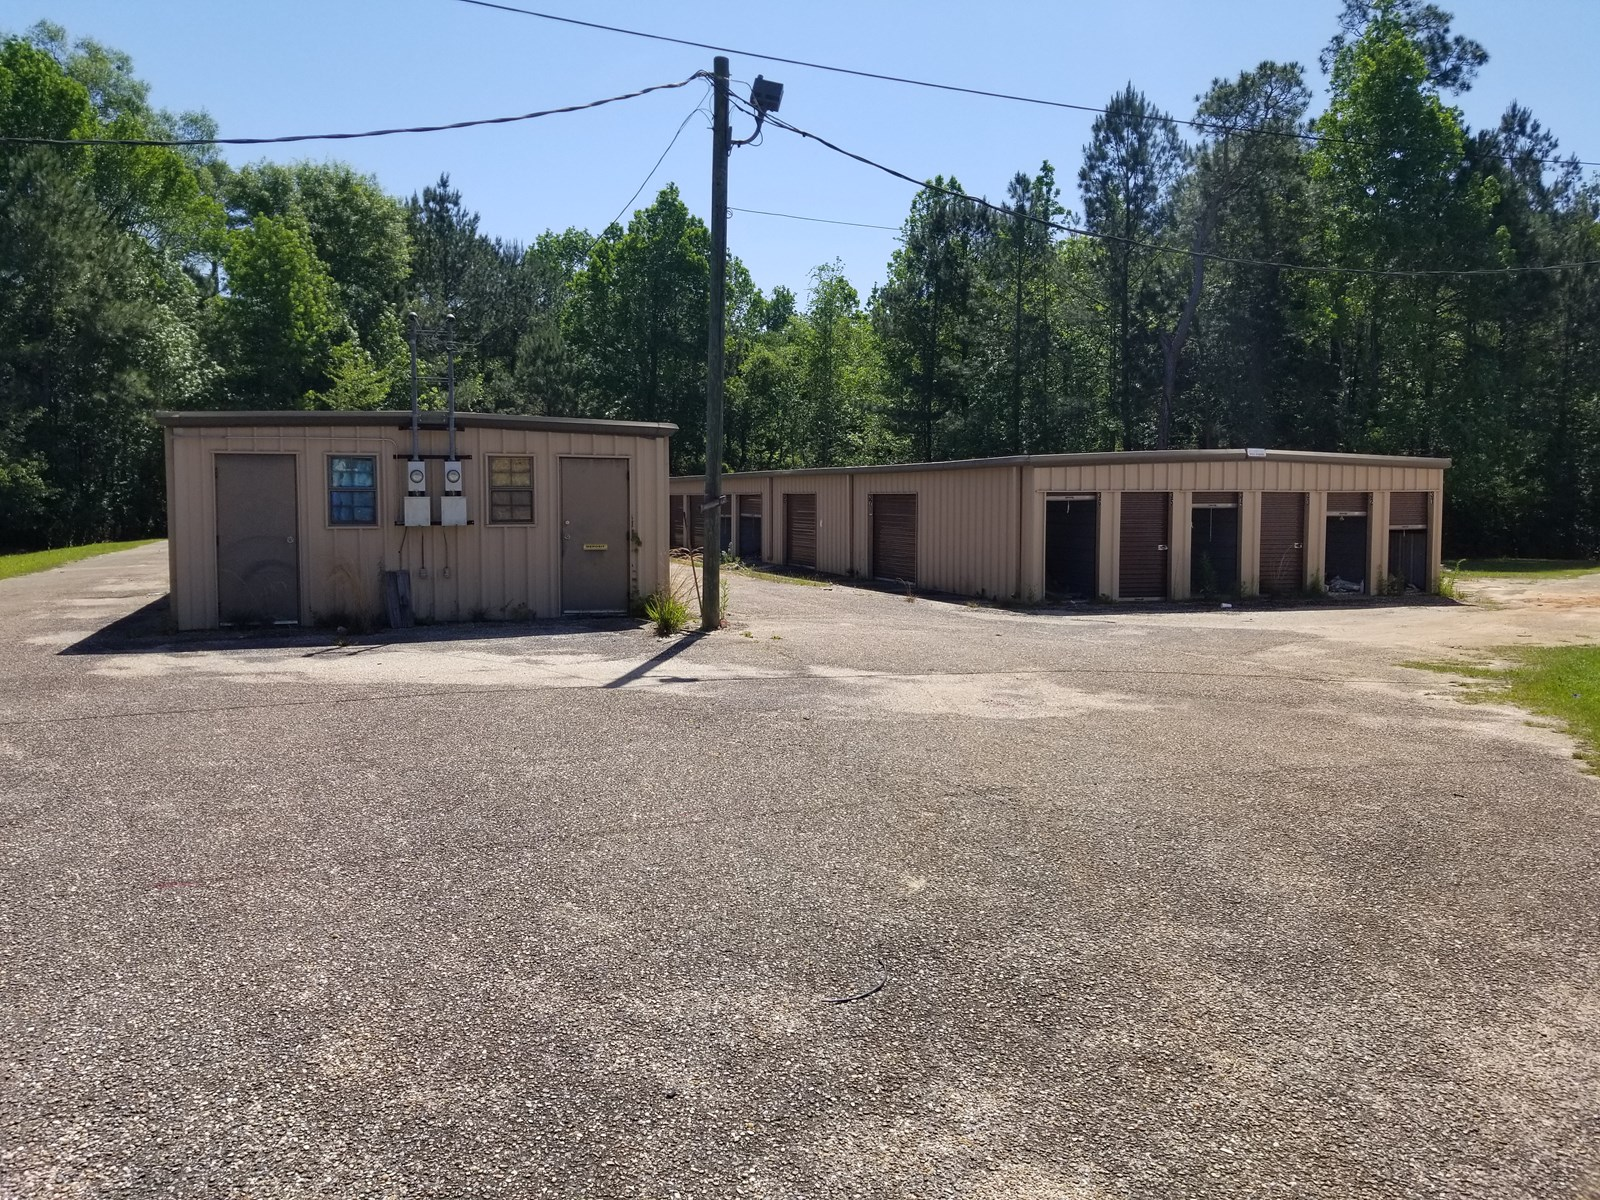 64 UNIT MINI WAREHOUSE STORAGE UNIT FOR SALE MALVERN, ALABAM